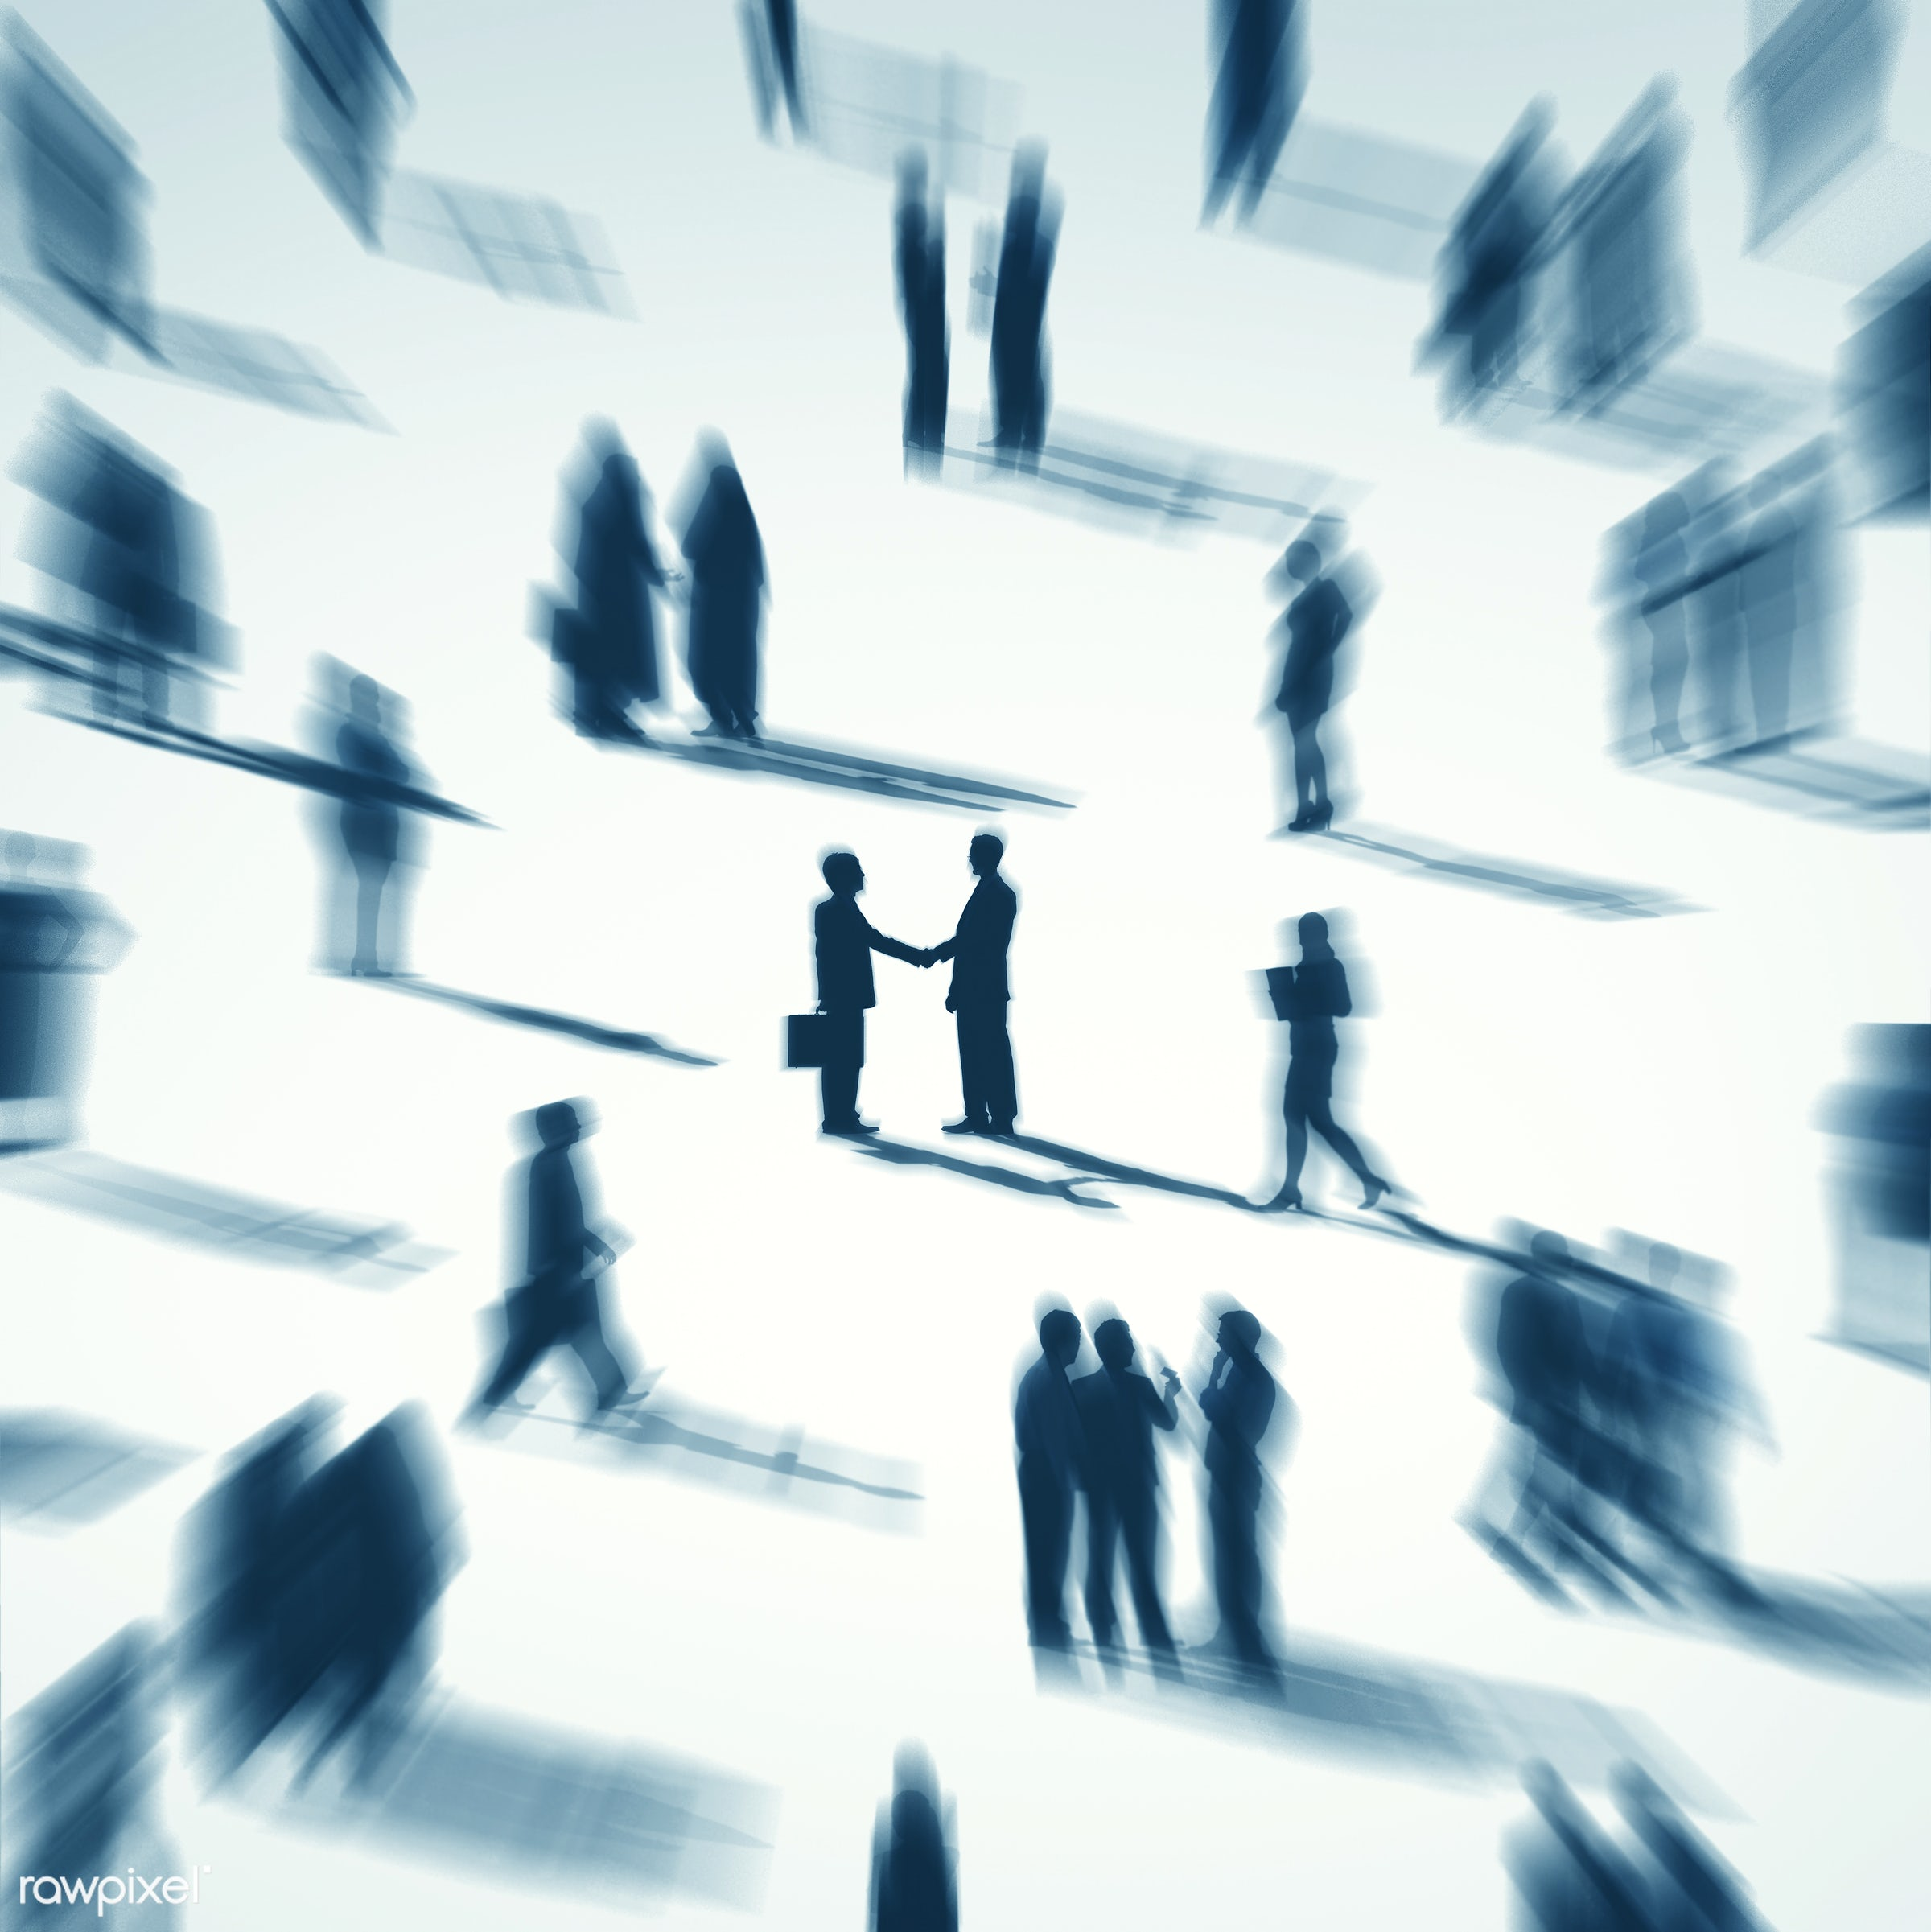 abstract, blurred, blurred motion, business, business people, businessmen, businesswomen, communication, community, commuter...